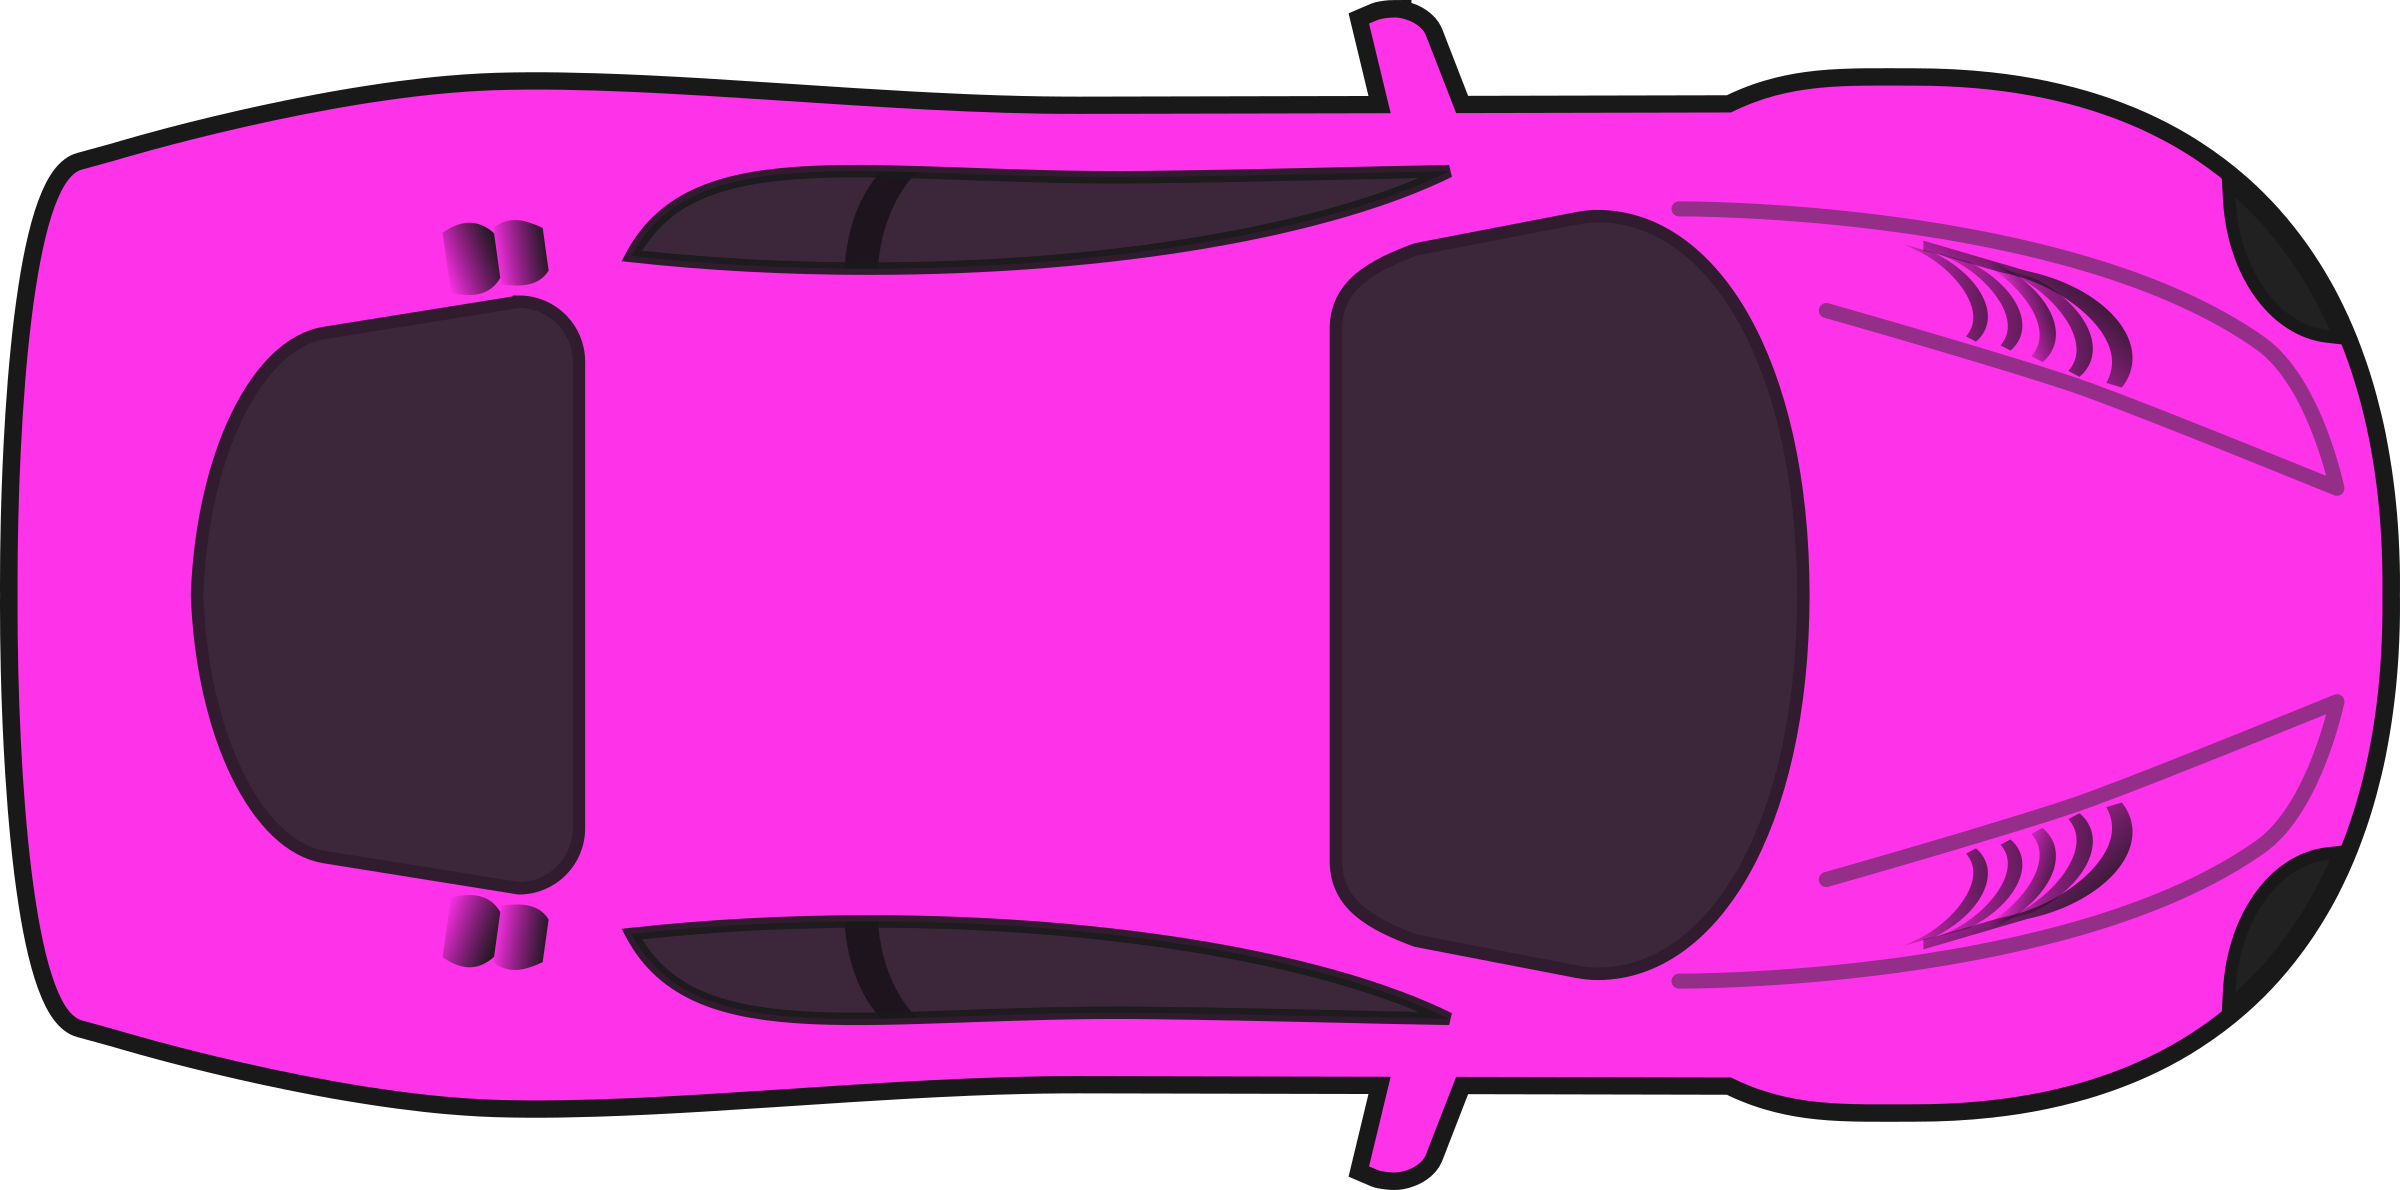 Pink car top view. Race clipart auto racing